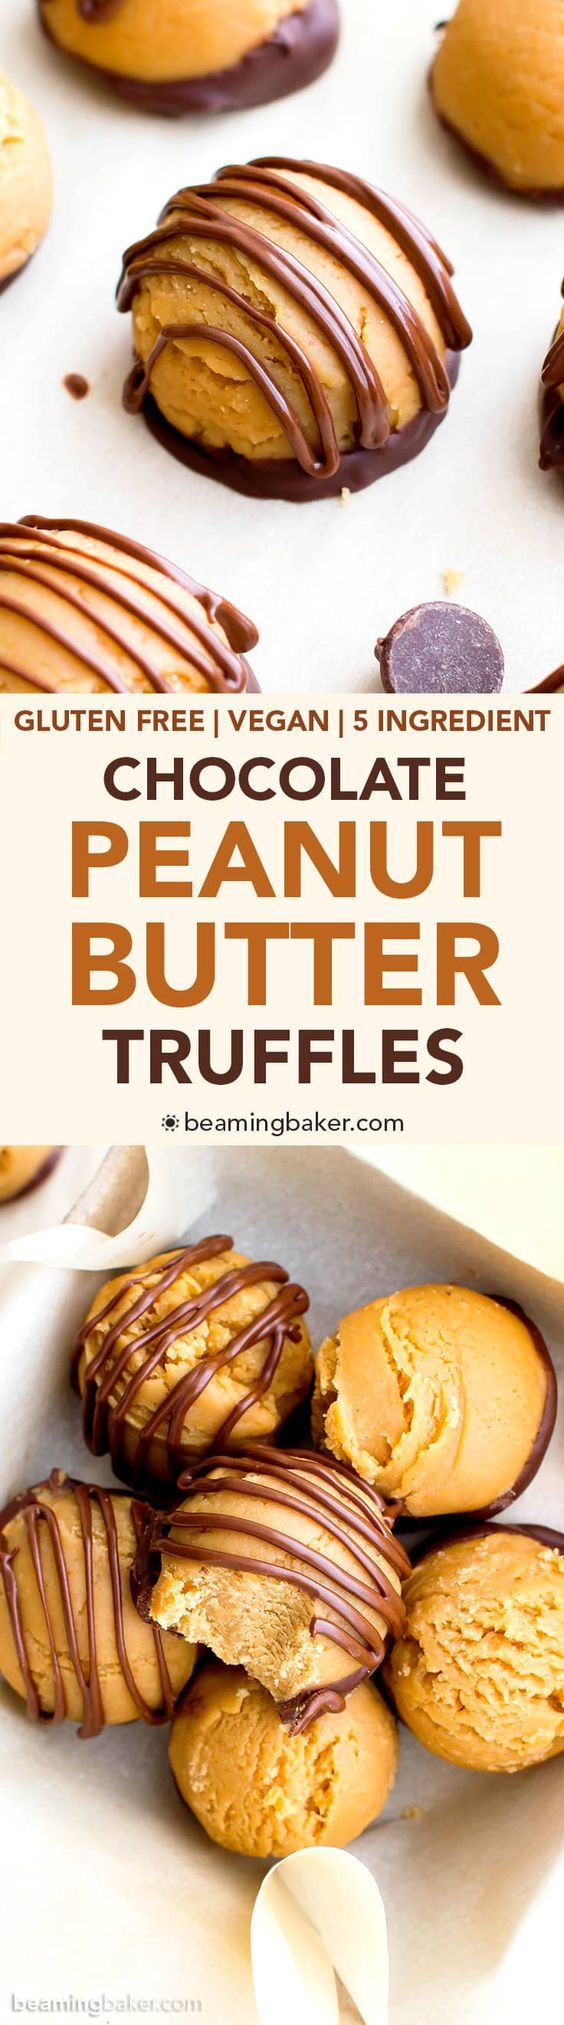 Gluten Free Chocolate Peanut Butter Truffles - 5 Ingredient